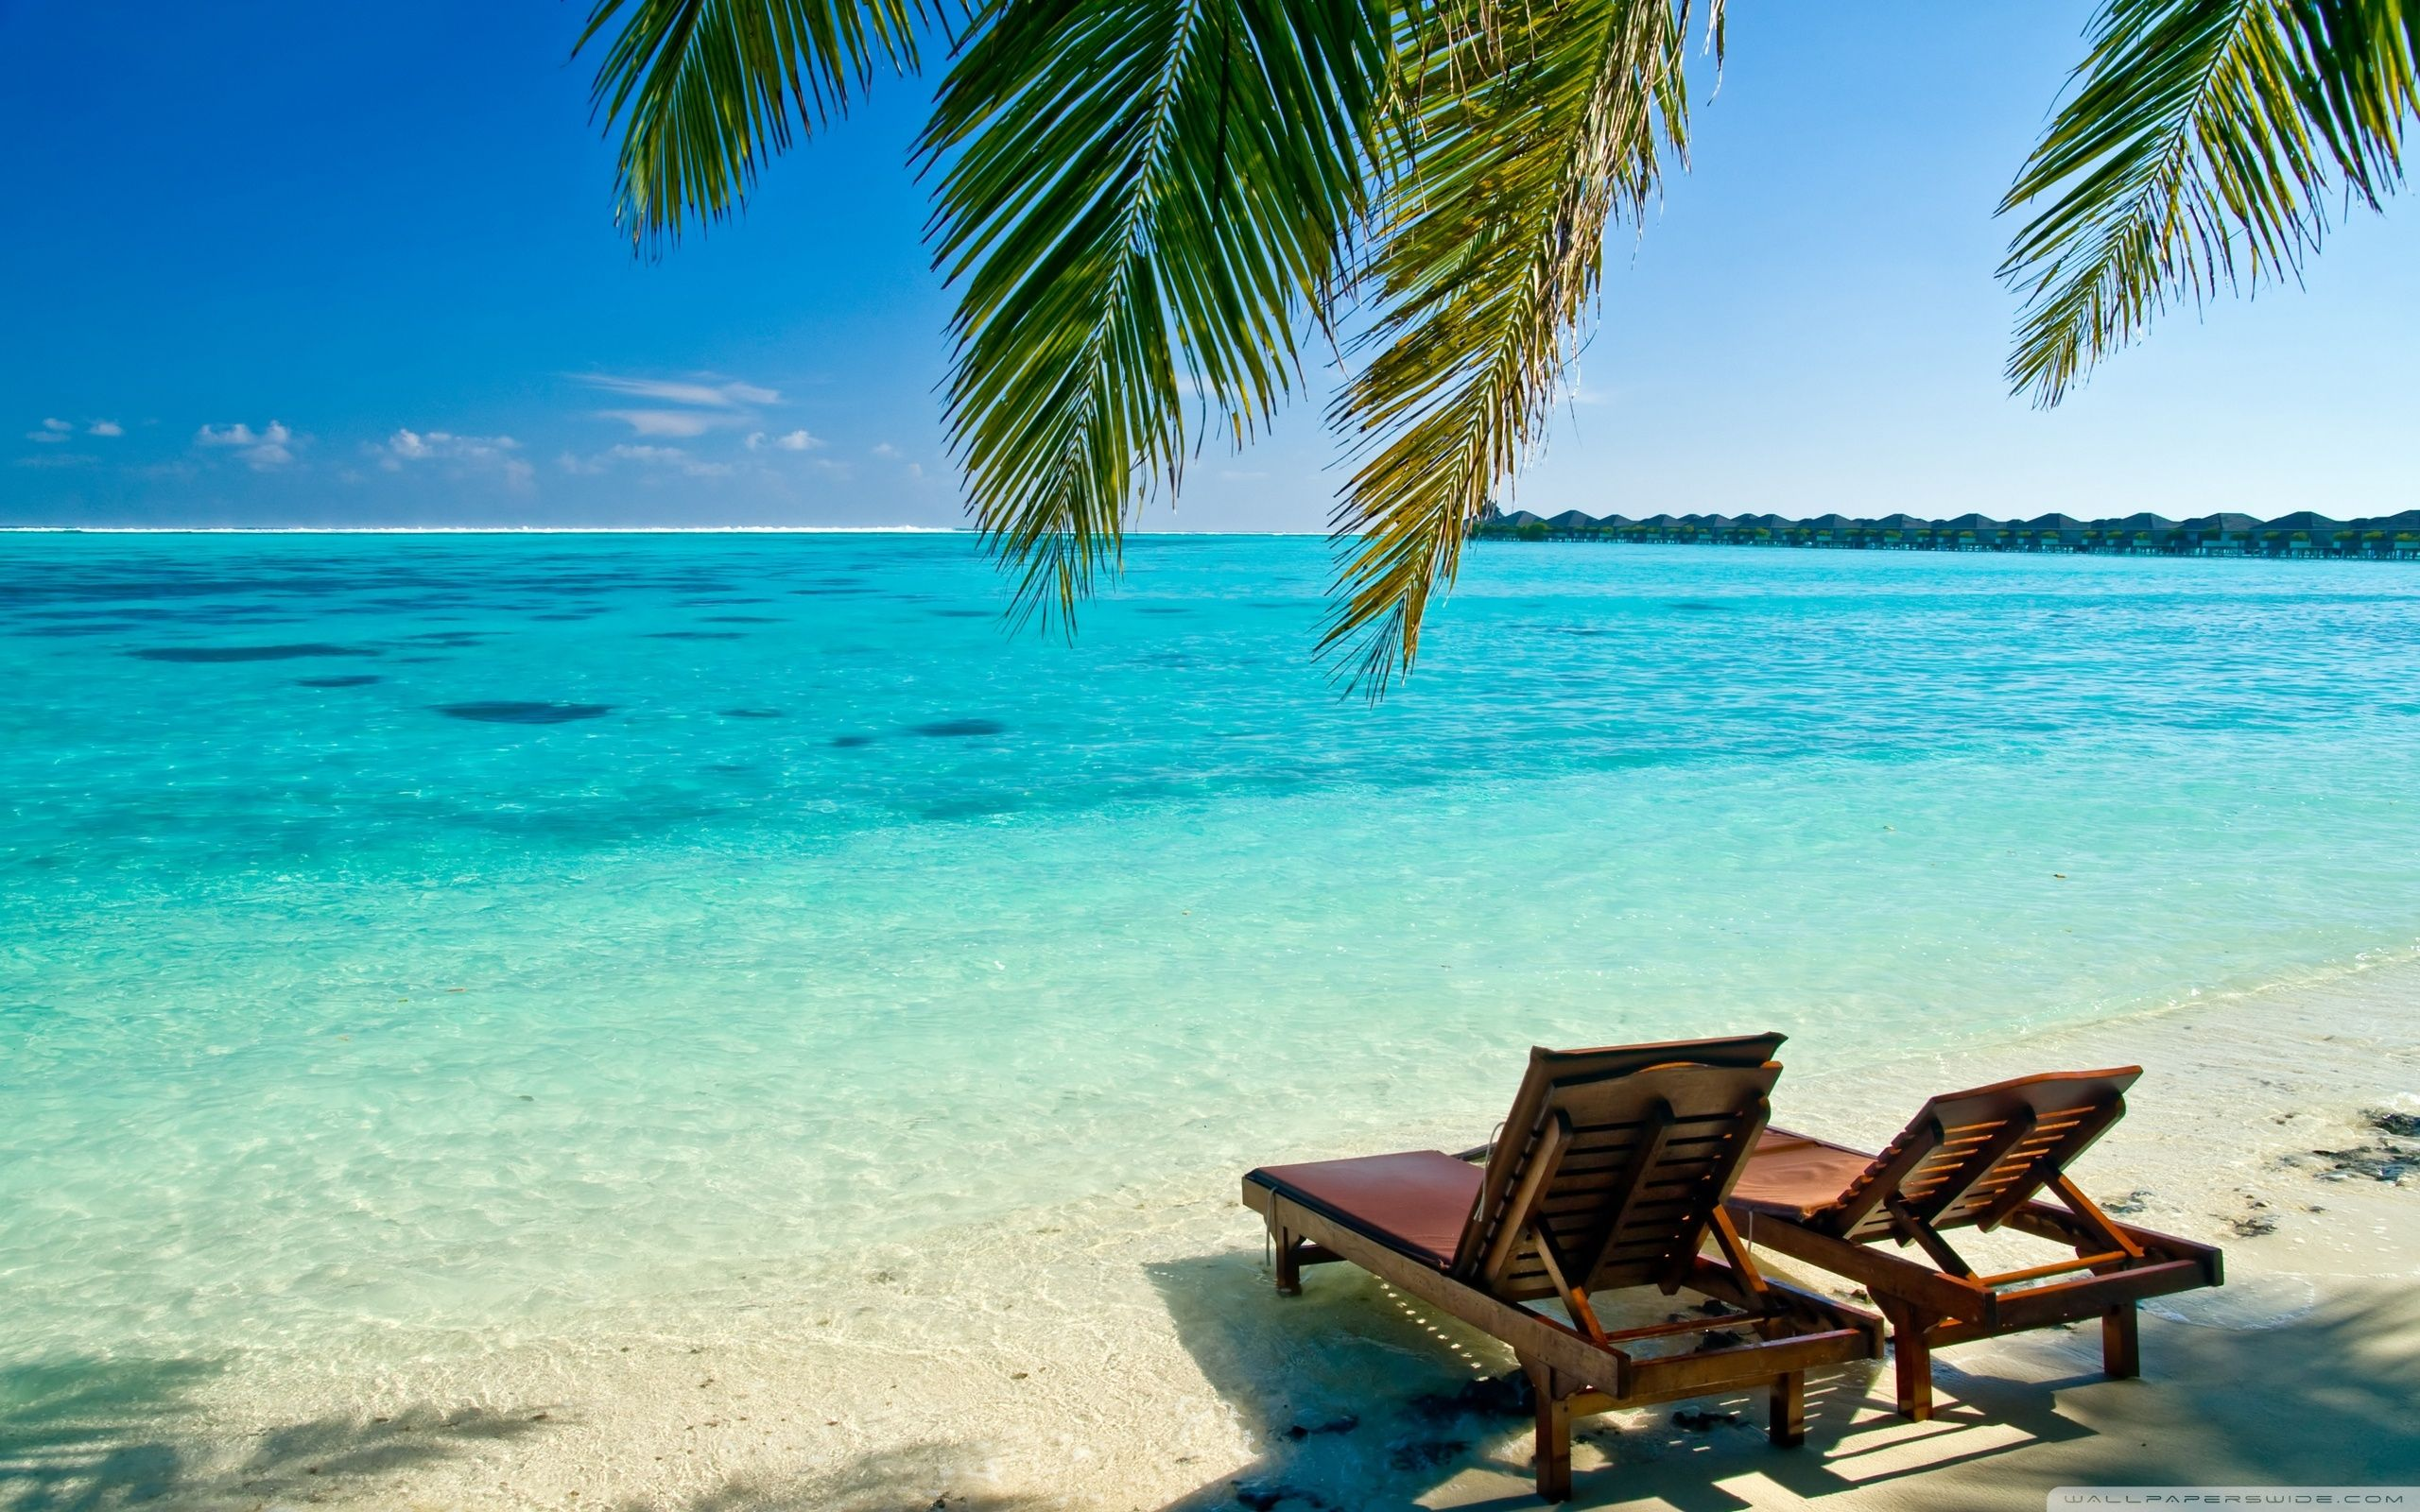 Beach Vacation Wallpapers   Top Beach Vacation Backgrounds 2560x1600